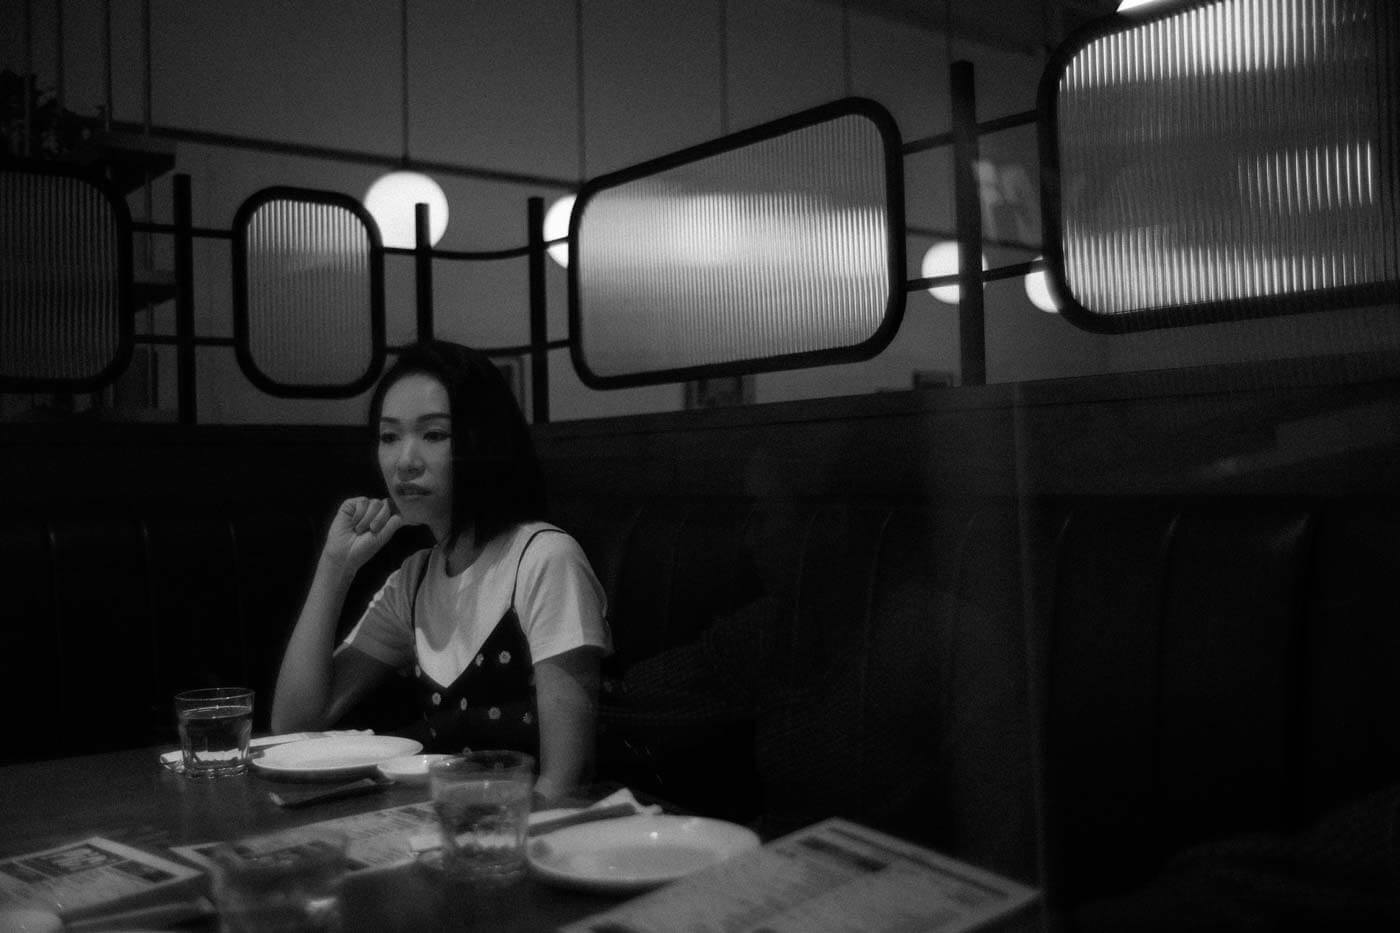 Leica-Summilux-35-35mm-f14-f1.4-lux-v1-version-1-I-steel-rim-goggle-fast-wide-angle-lens-review-character-bw-photo-Comparison-M9P-digital-sister-restaurant